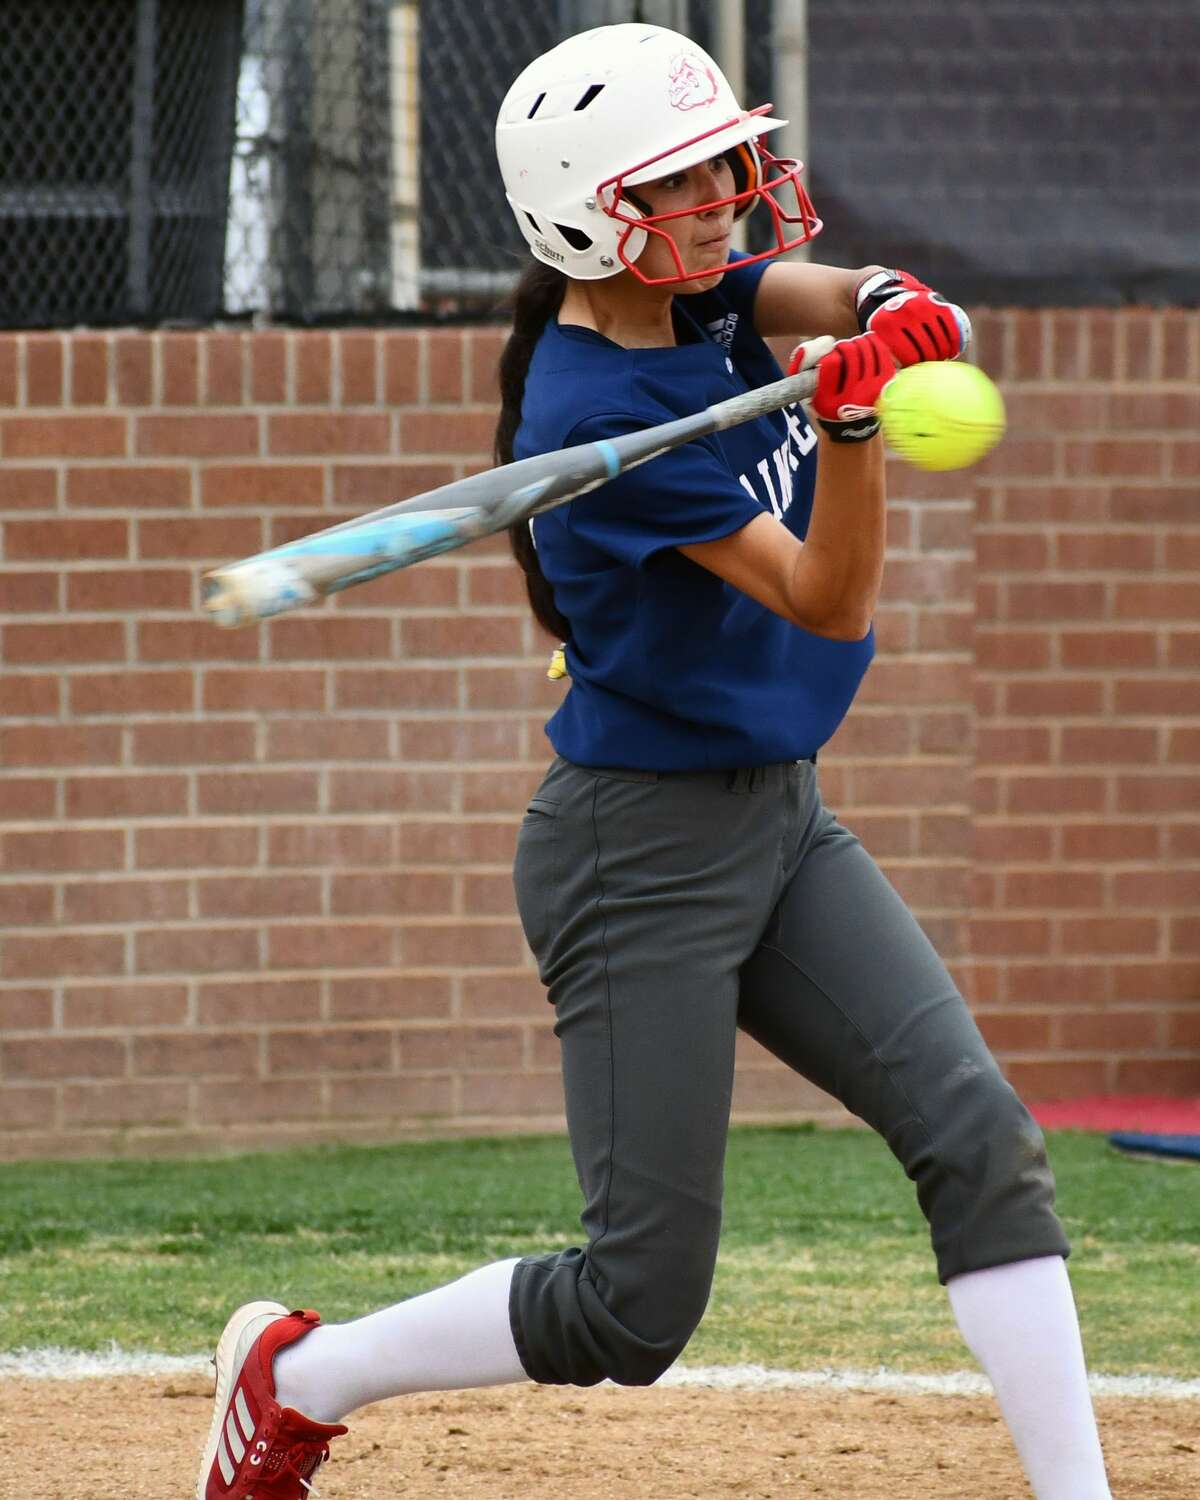 Plainview's Mikayla Carrillo looks to connect on a pitch.